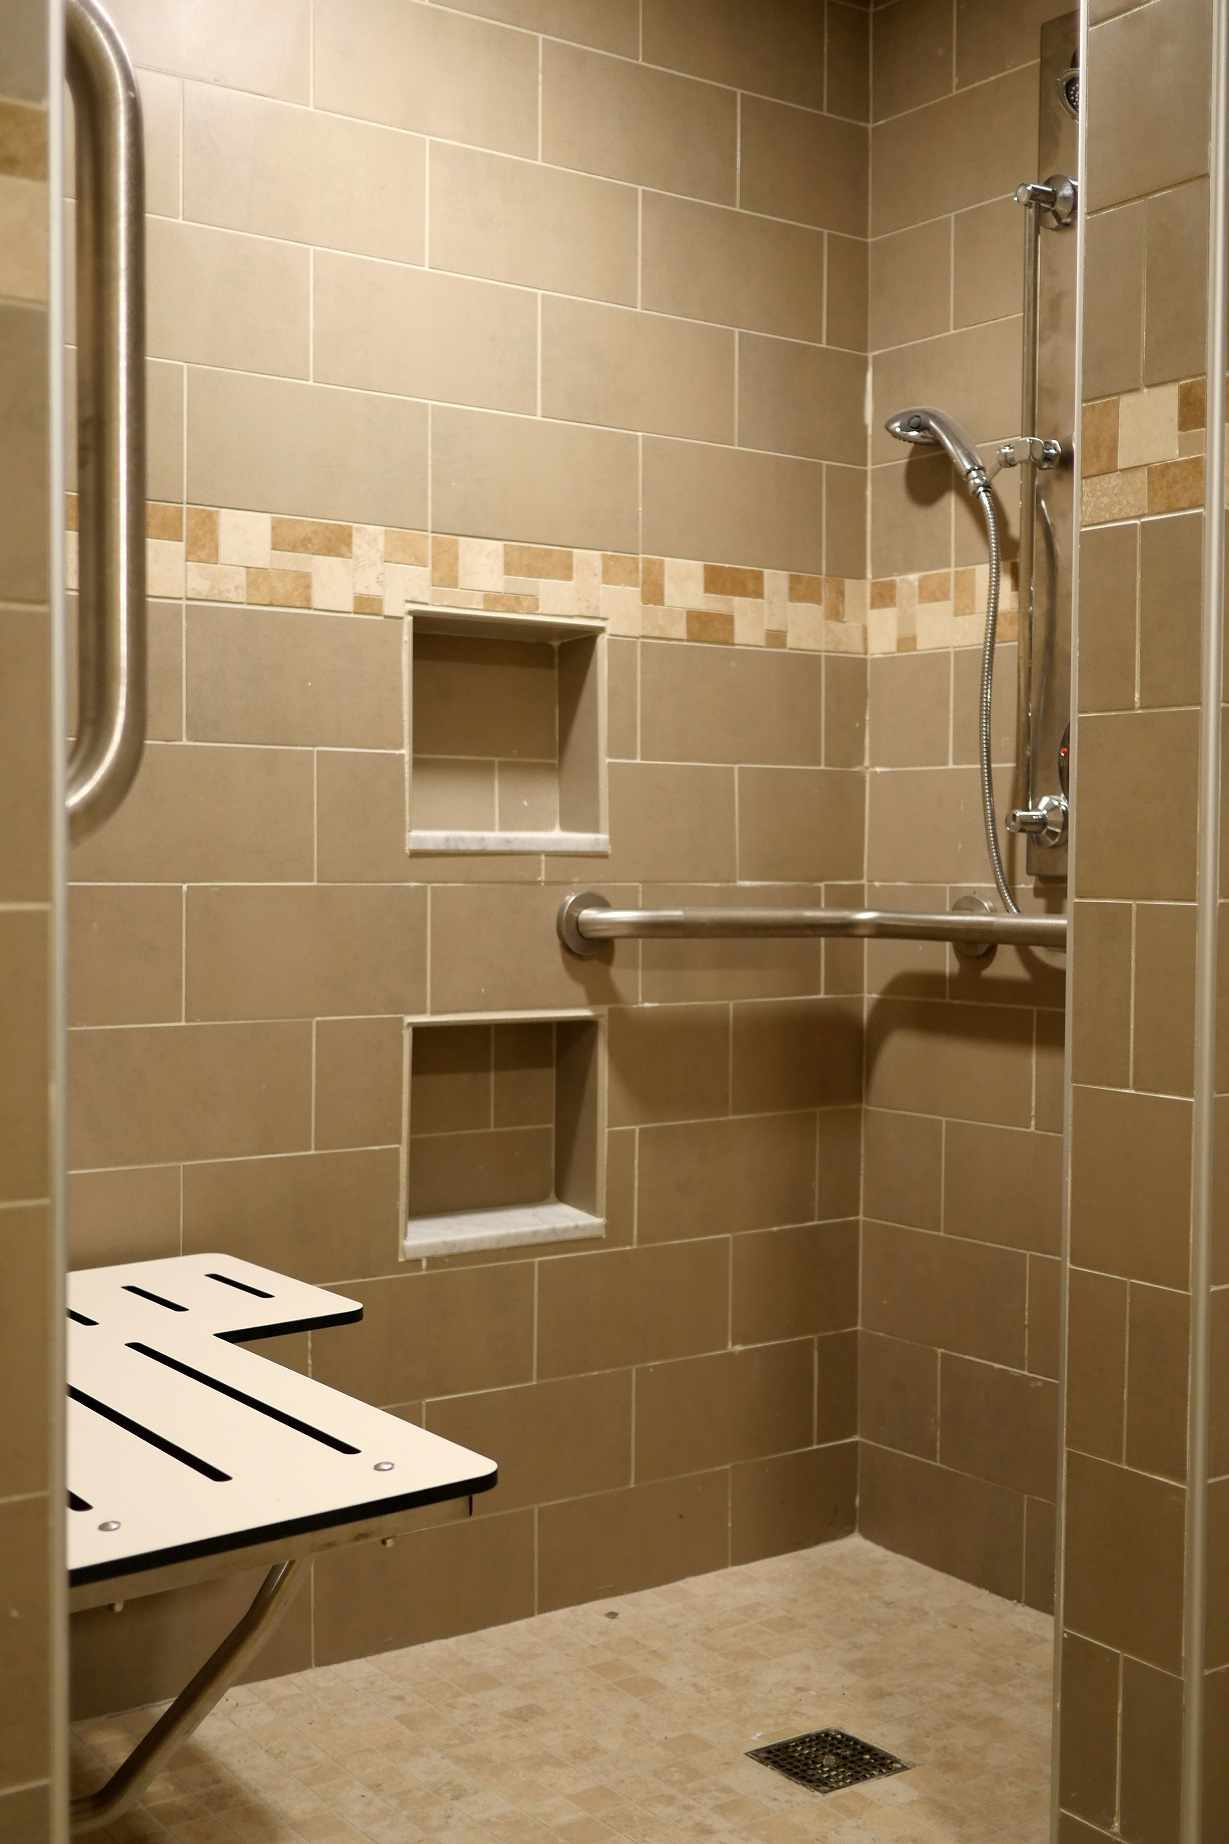 Top ten improvement projects on campus this summer for New bathroom 2016